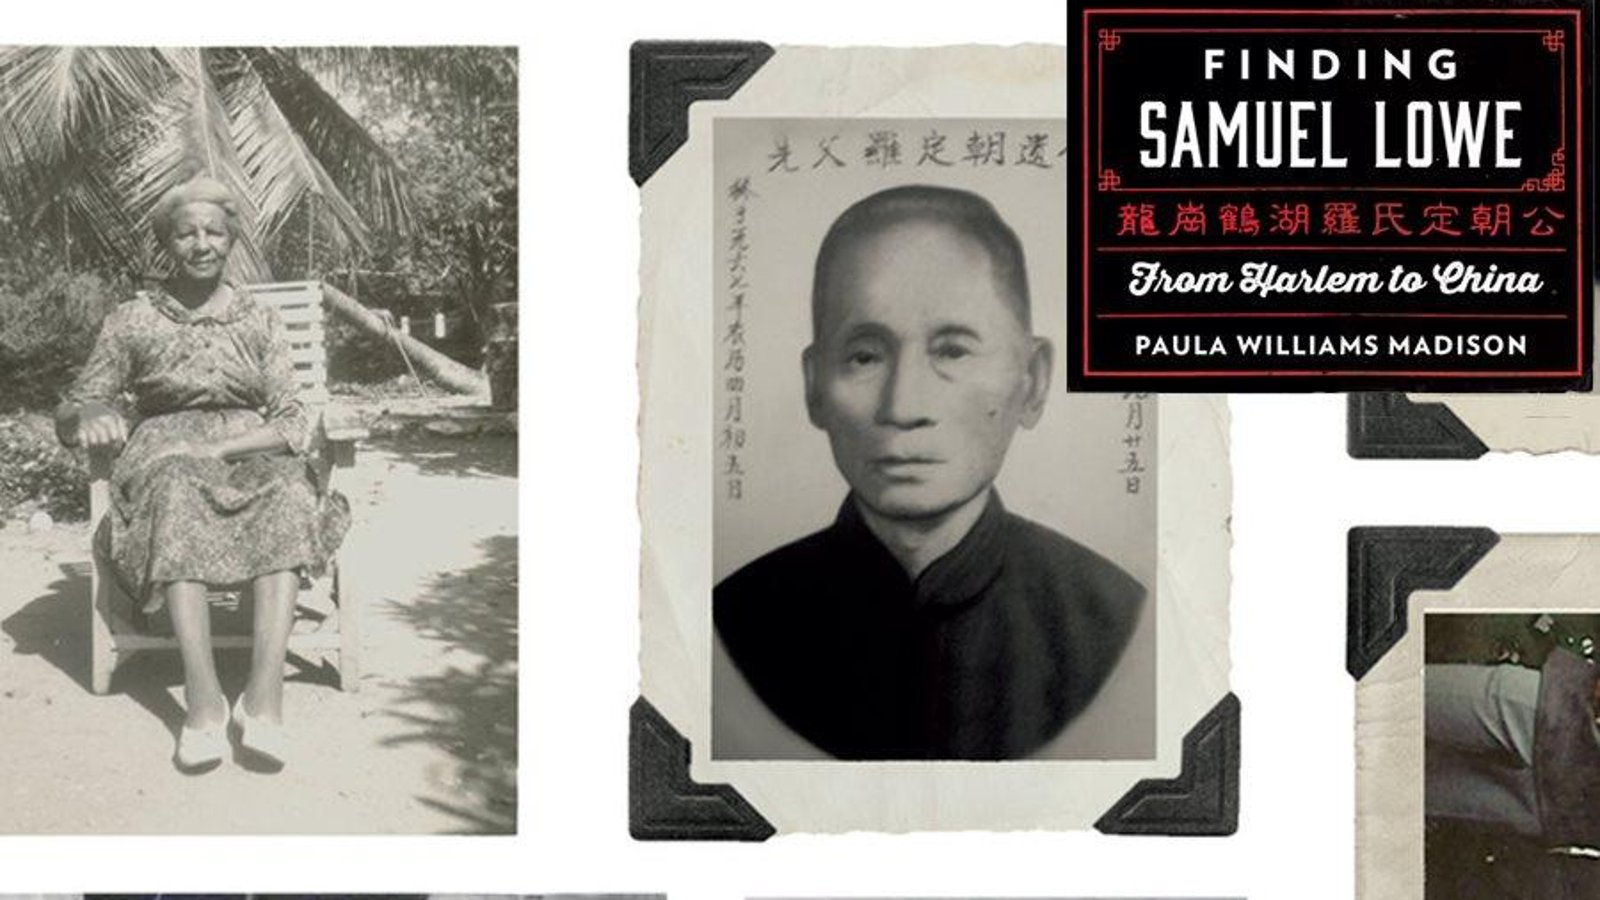 Finding Samuel Lowe - Afro-Chinese-Jamaican Harlem Family Seek Their Chinese grandfather